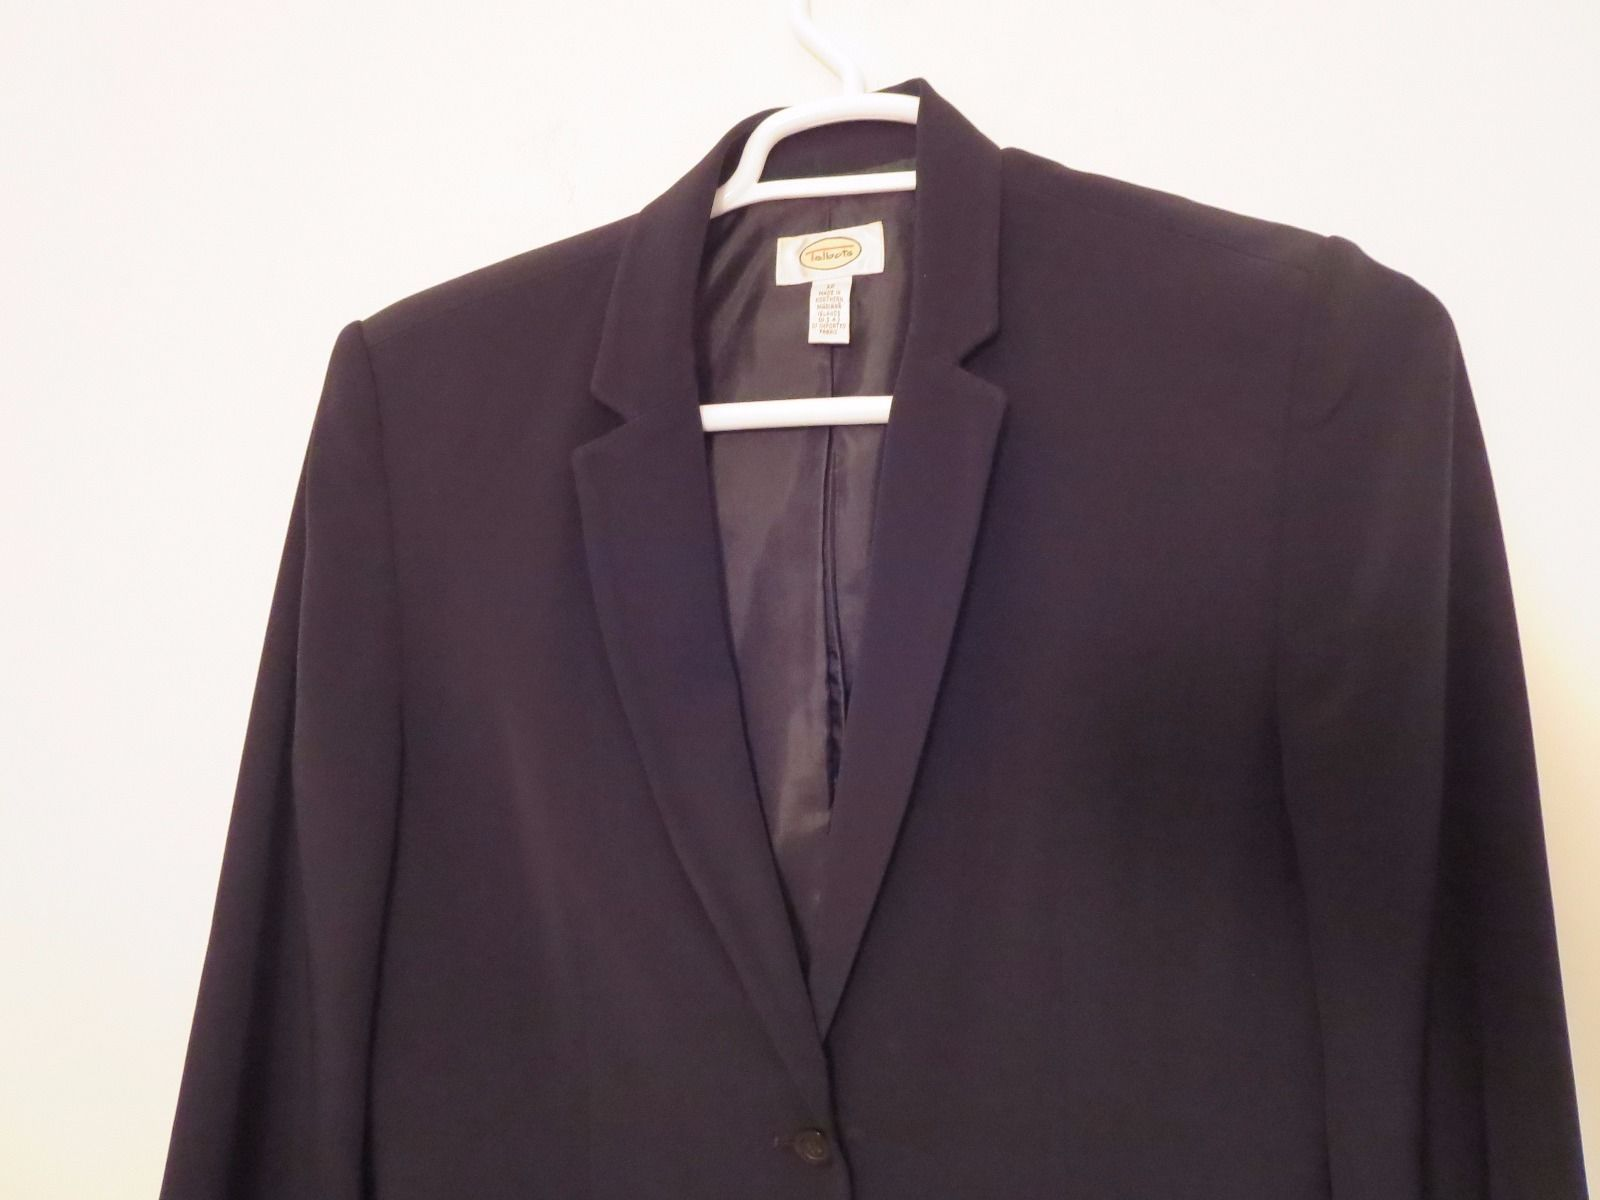 Talbots Women's Size 12 Two Button Black Blazer Excellent Condition High Quality image 2